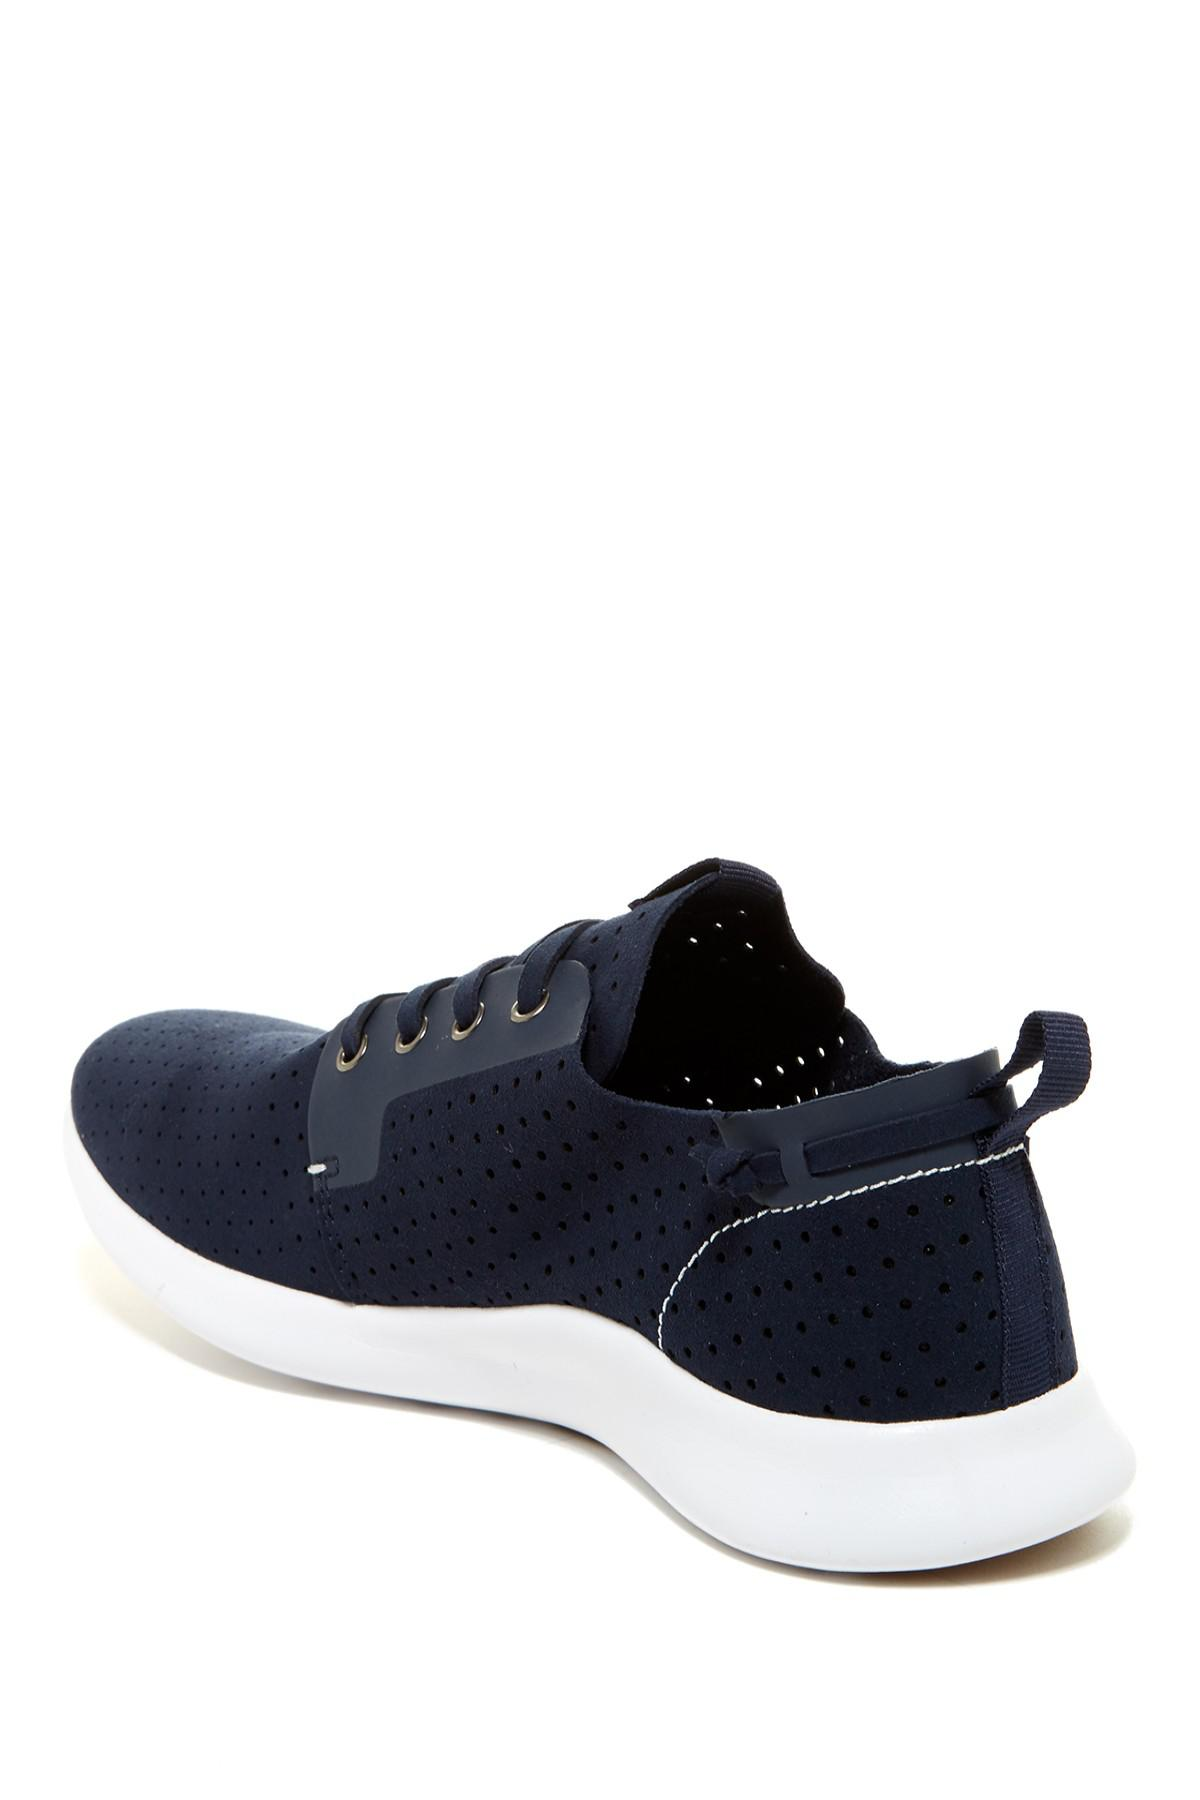 2f81efe6dee Steve Madden Blue Chyll Perforated Sneaker for men